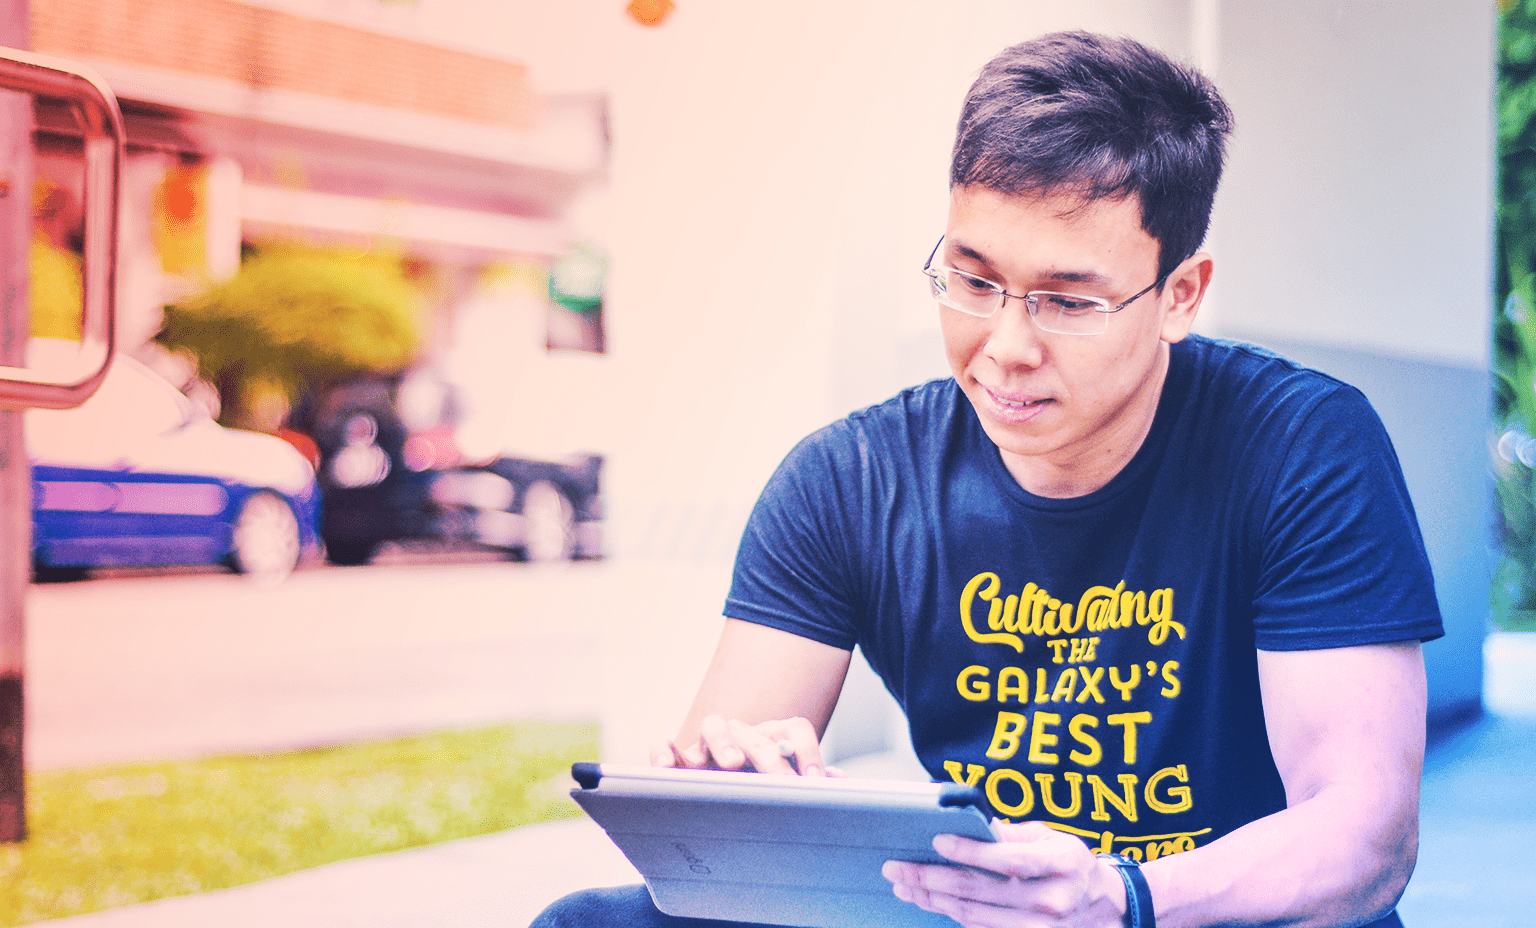 Surviving a Startup Environment: Mentoring aspiring changemakers - Khairul Rusydi on his tablet